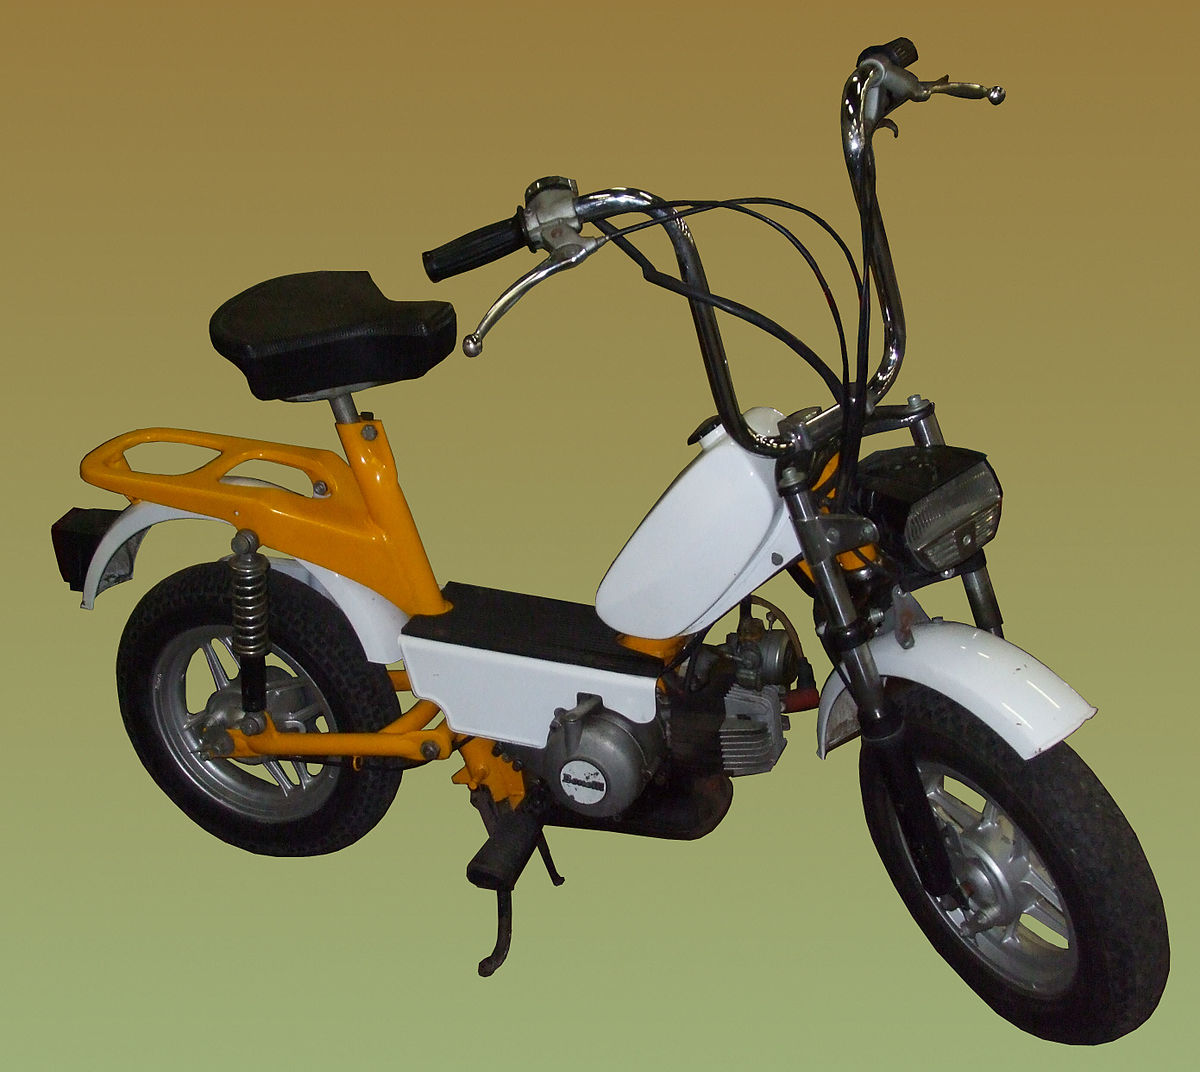 Limited Use Vehicle Moped or Motorcycle  MassRMVcom